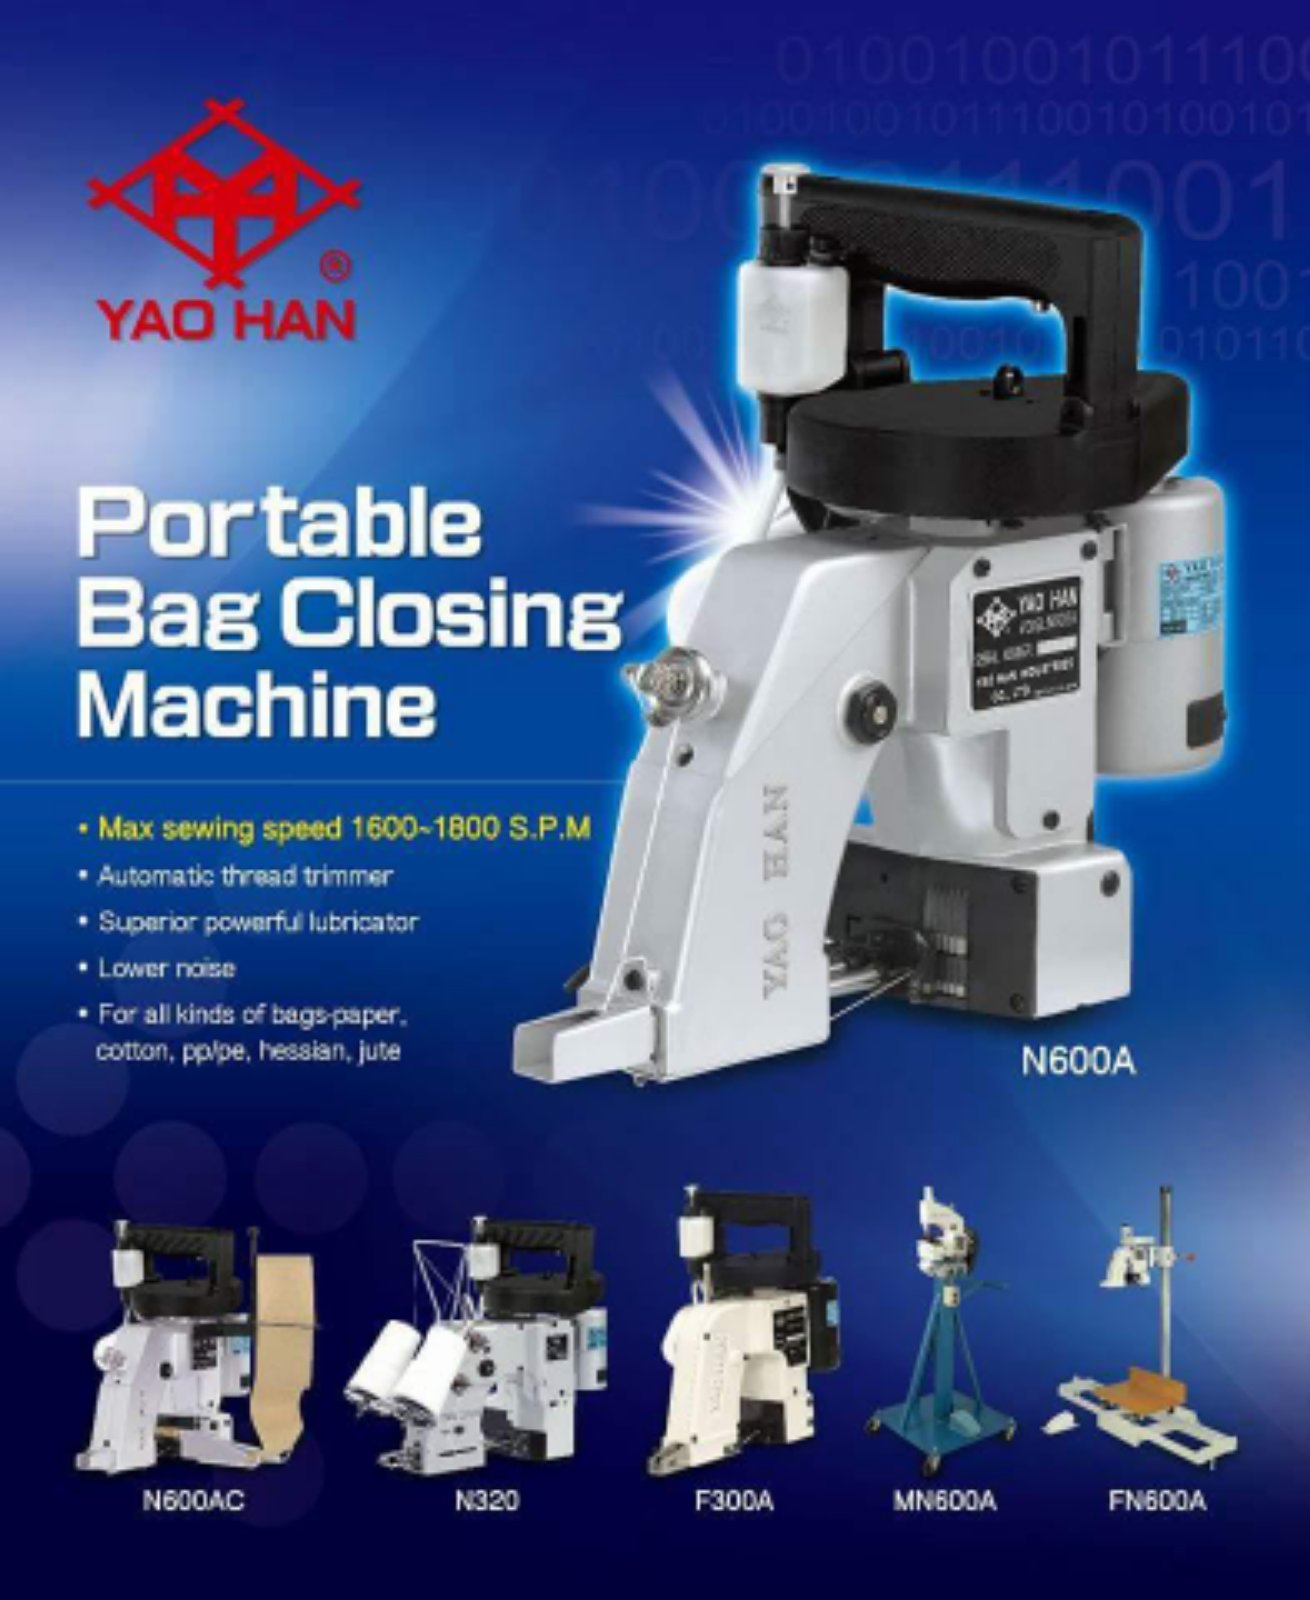 New Yaohan Bag Closing Machine